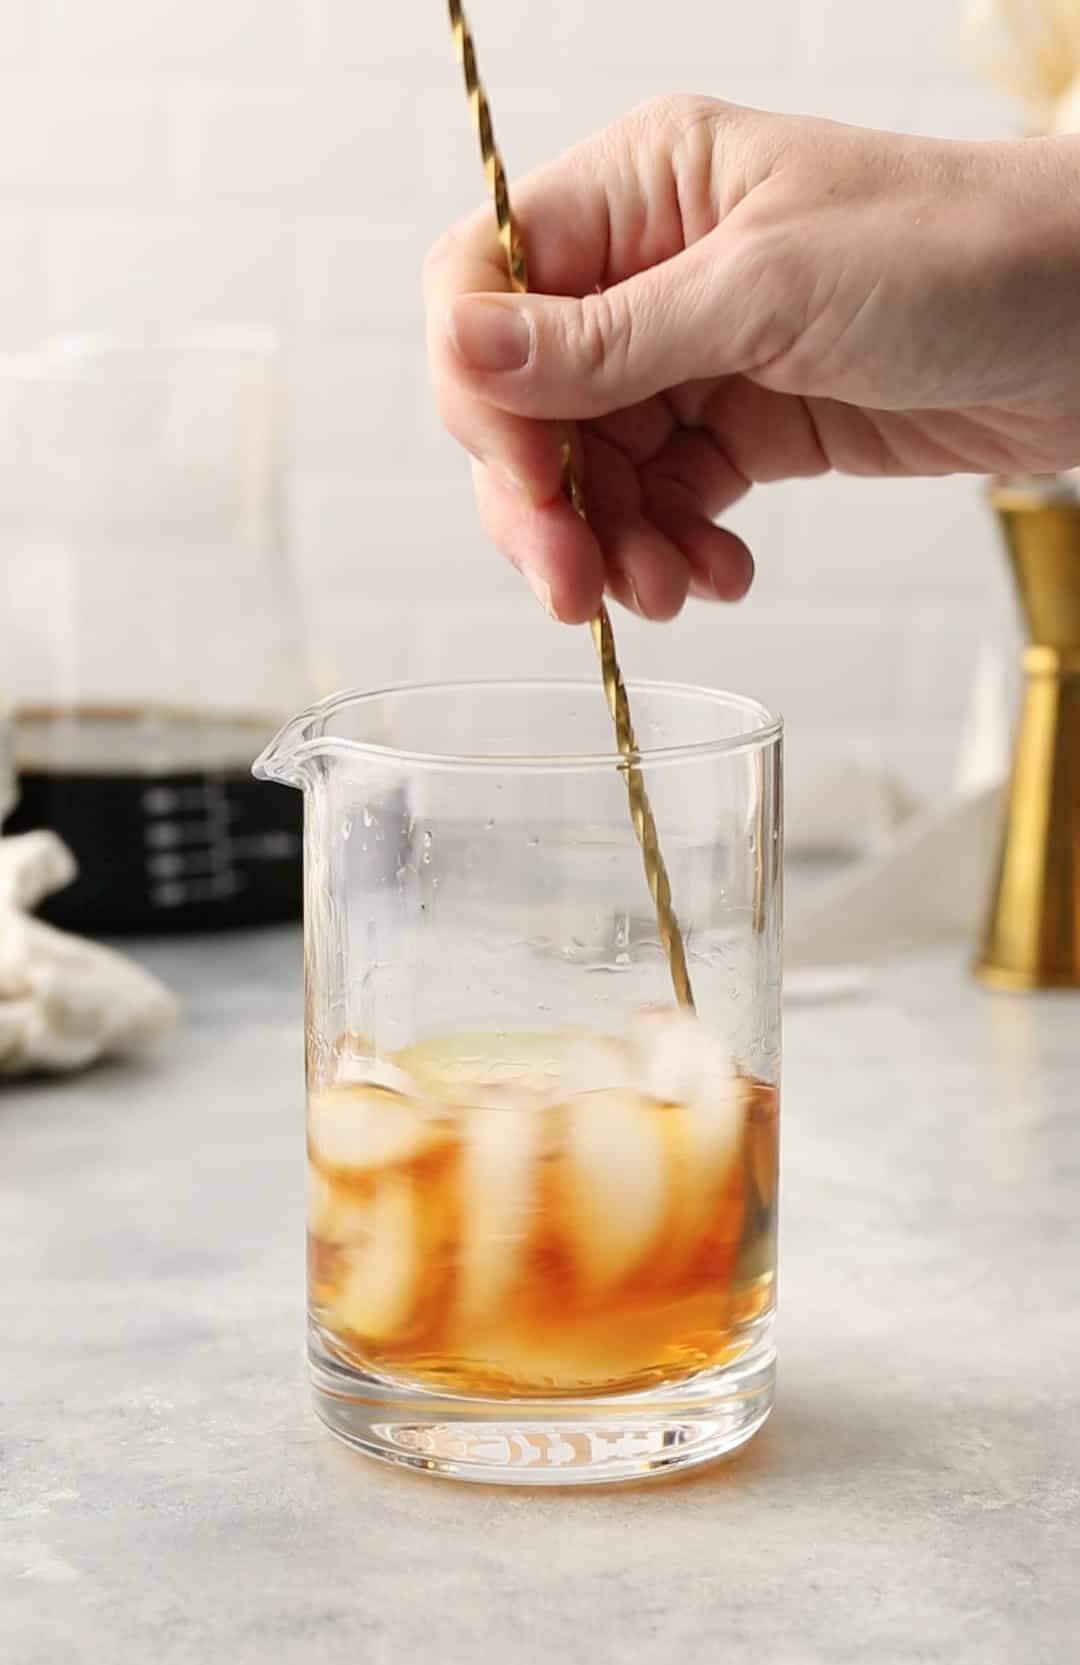 stirring the bourbon and liqueur with ice in a cocktail mixing glass